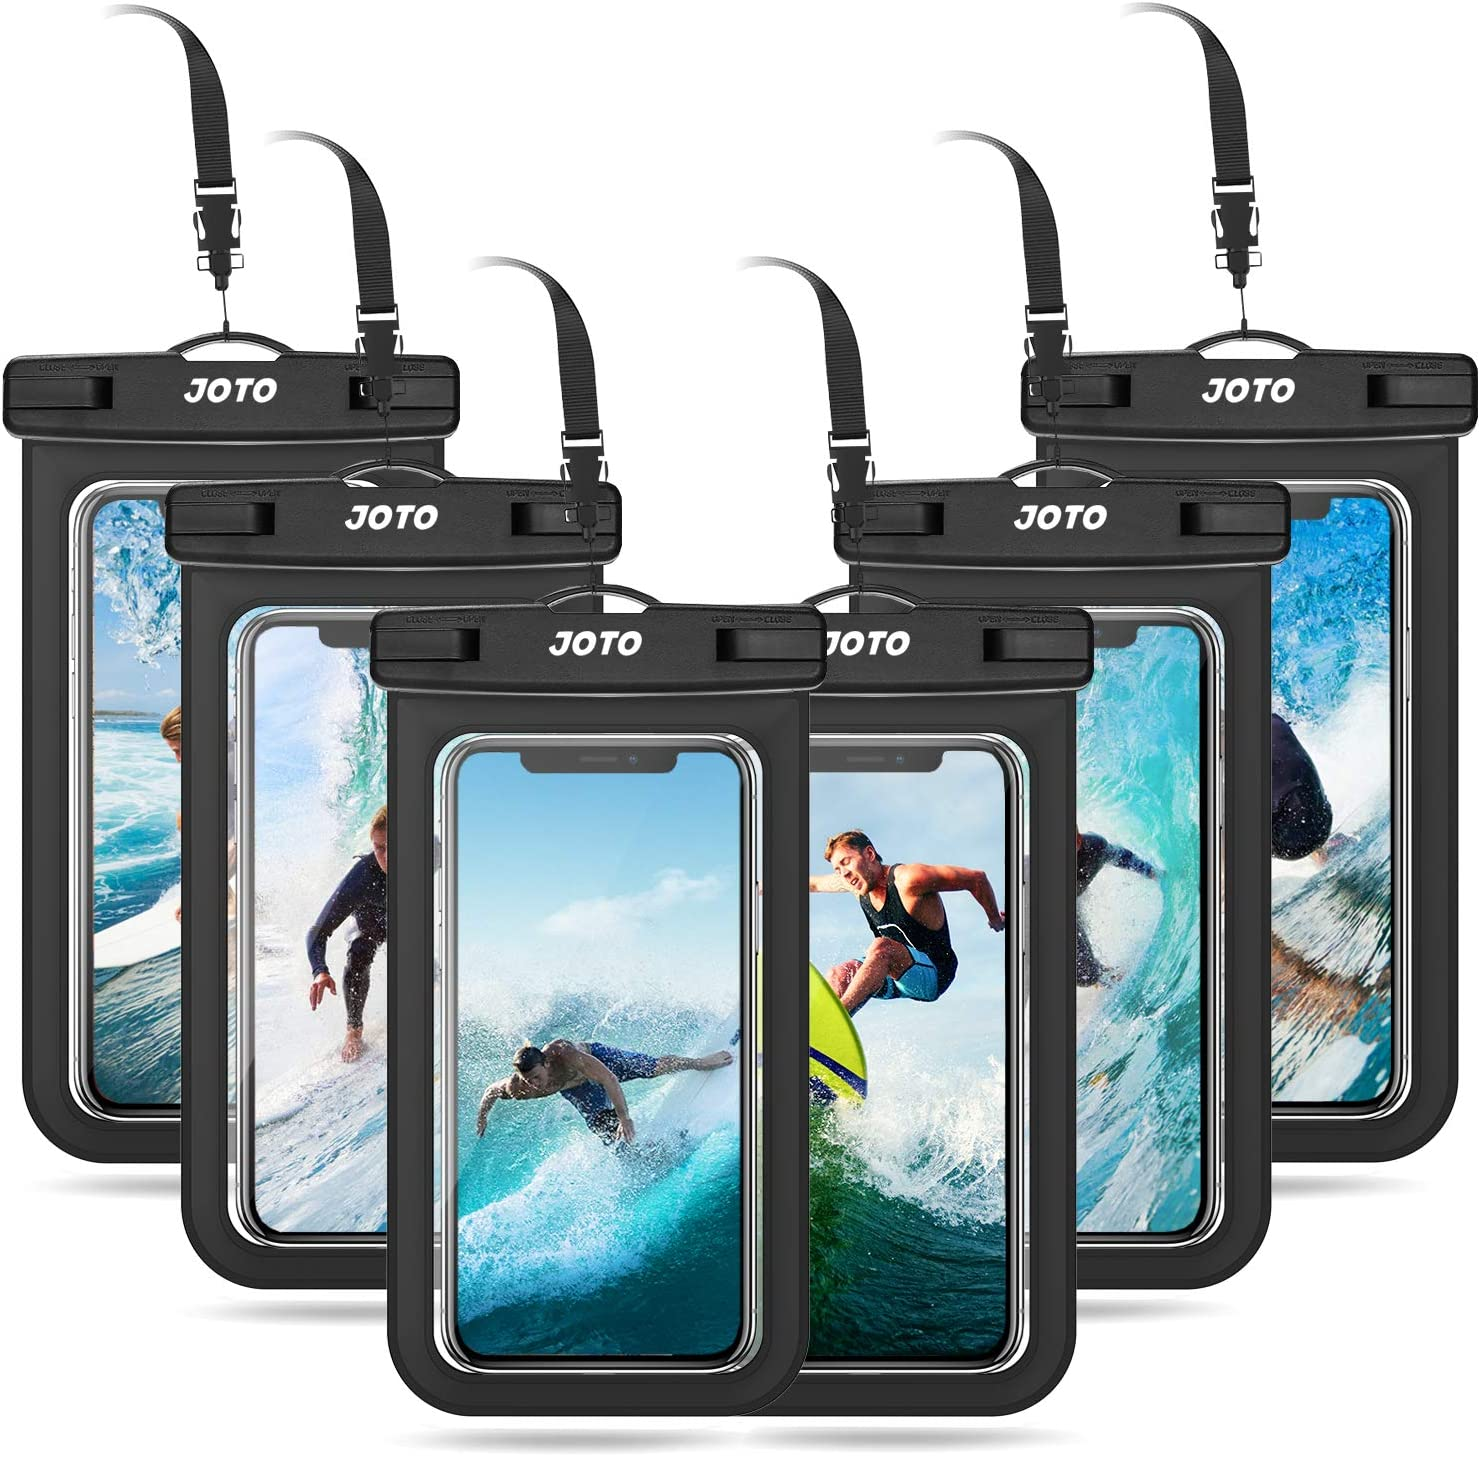 """JOTO Universal Waterproof Pouch Cellphone Dry Bag Case for iPhone 12 Pro Max 11 Pro Max Xs Max XR XS X 8 7 6S Plus, Galaxy S10 S9/S9 +/S8/S8 +/Note 10+ 10 9, Pixel 4 XL up to 6.8"""" -6 Pack, Black"""